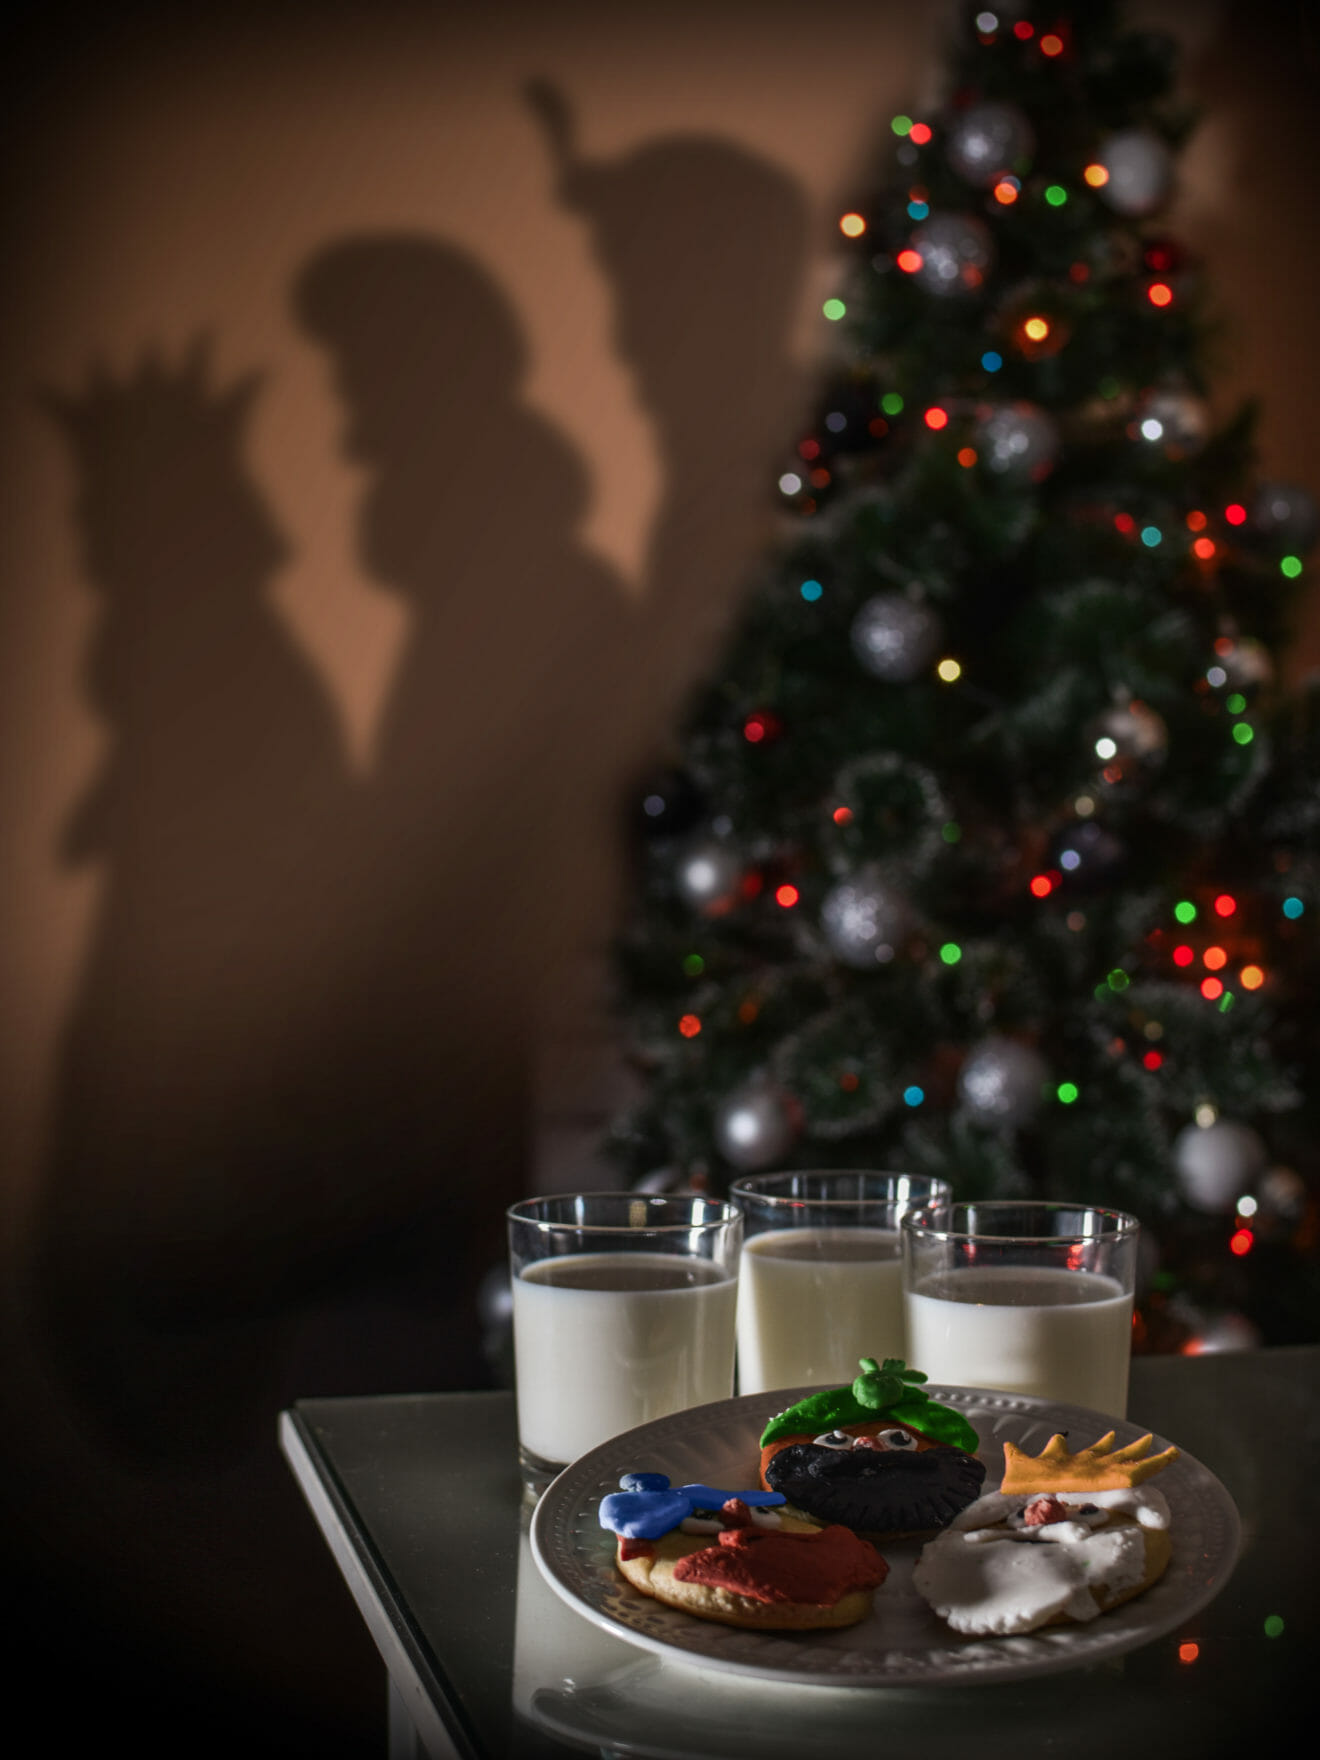 COOKIES AND MILK FOR THE TREE WISE MEN OF ORIENT, Kings Melchior, Gaspar and Balthazar, bringing gifts to kids, AT EPIPHANY